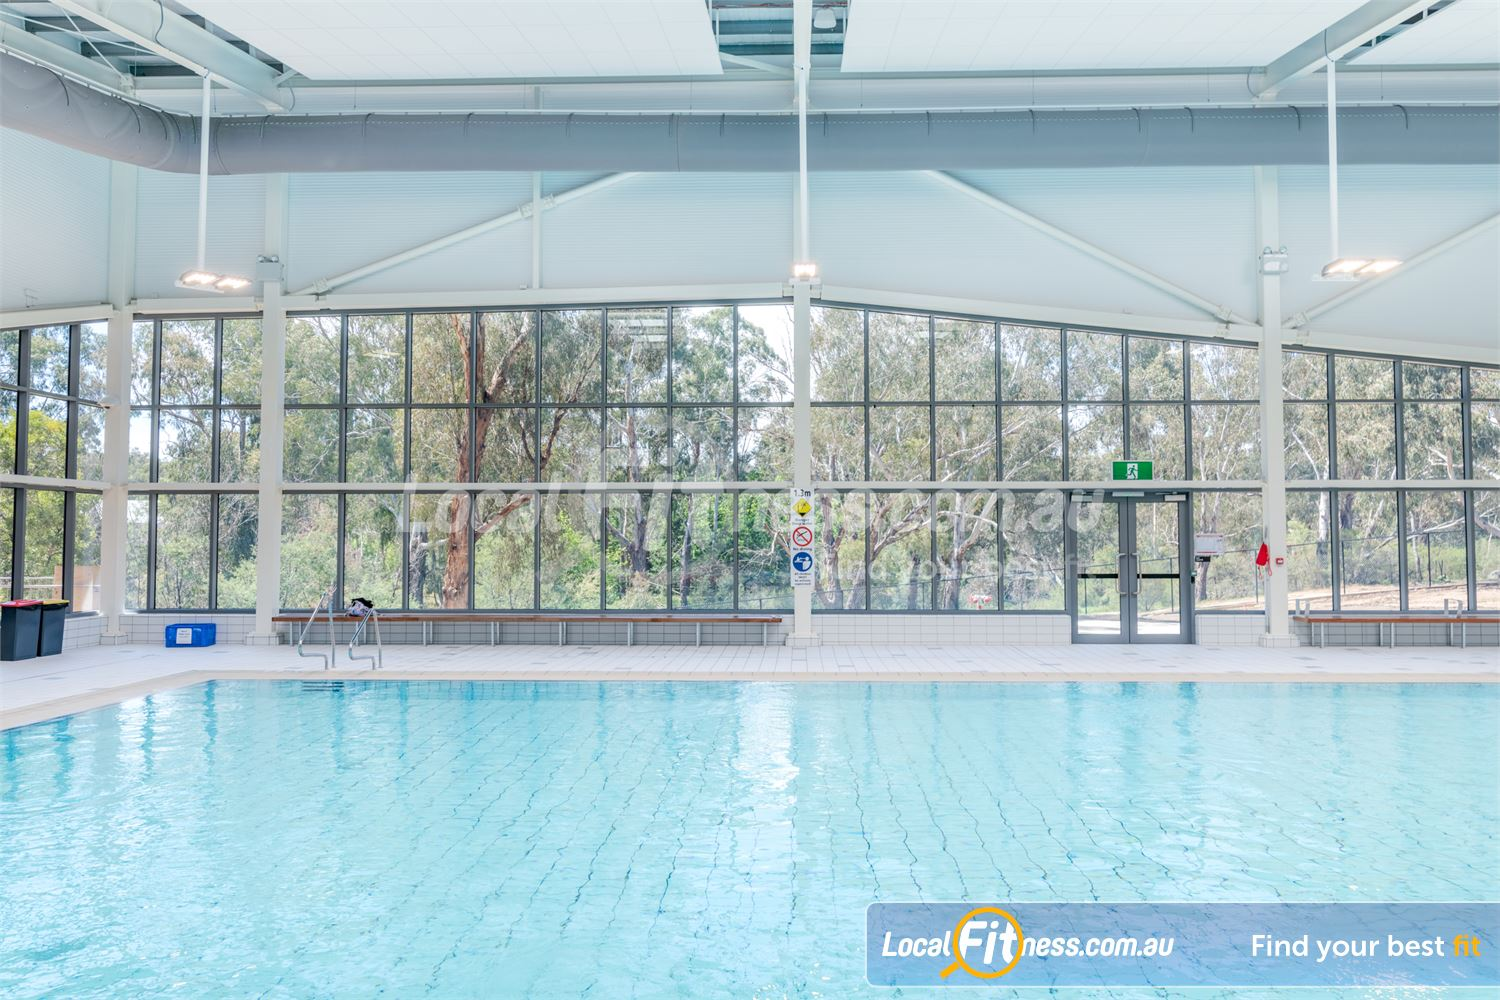 Eltham Leisure Centre Near Research Our warm water pool provides scenic views of the Eltham treescape.